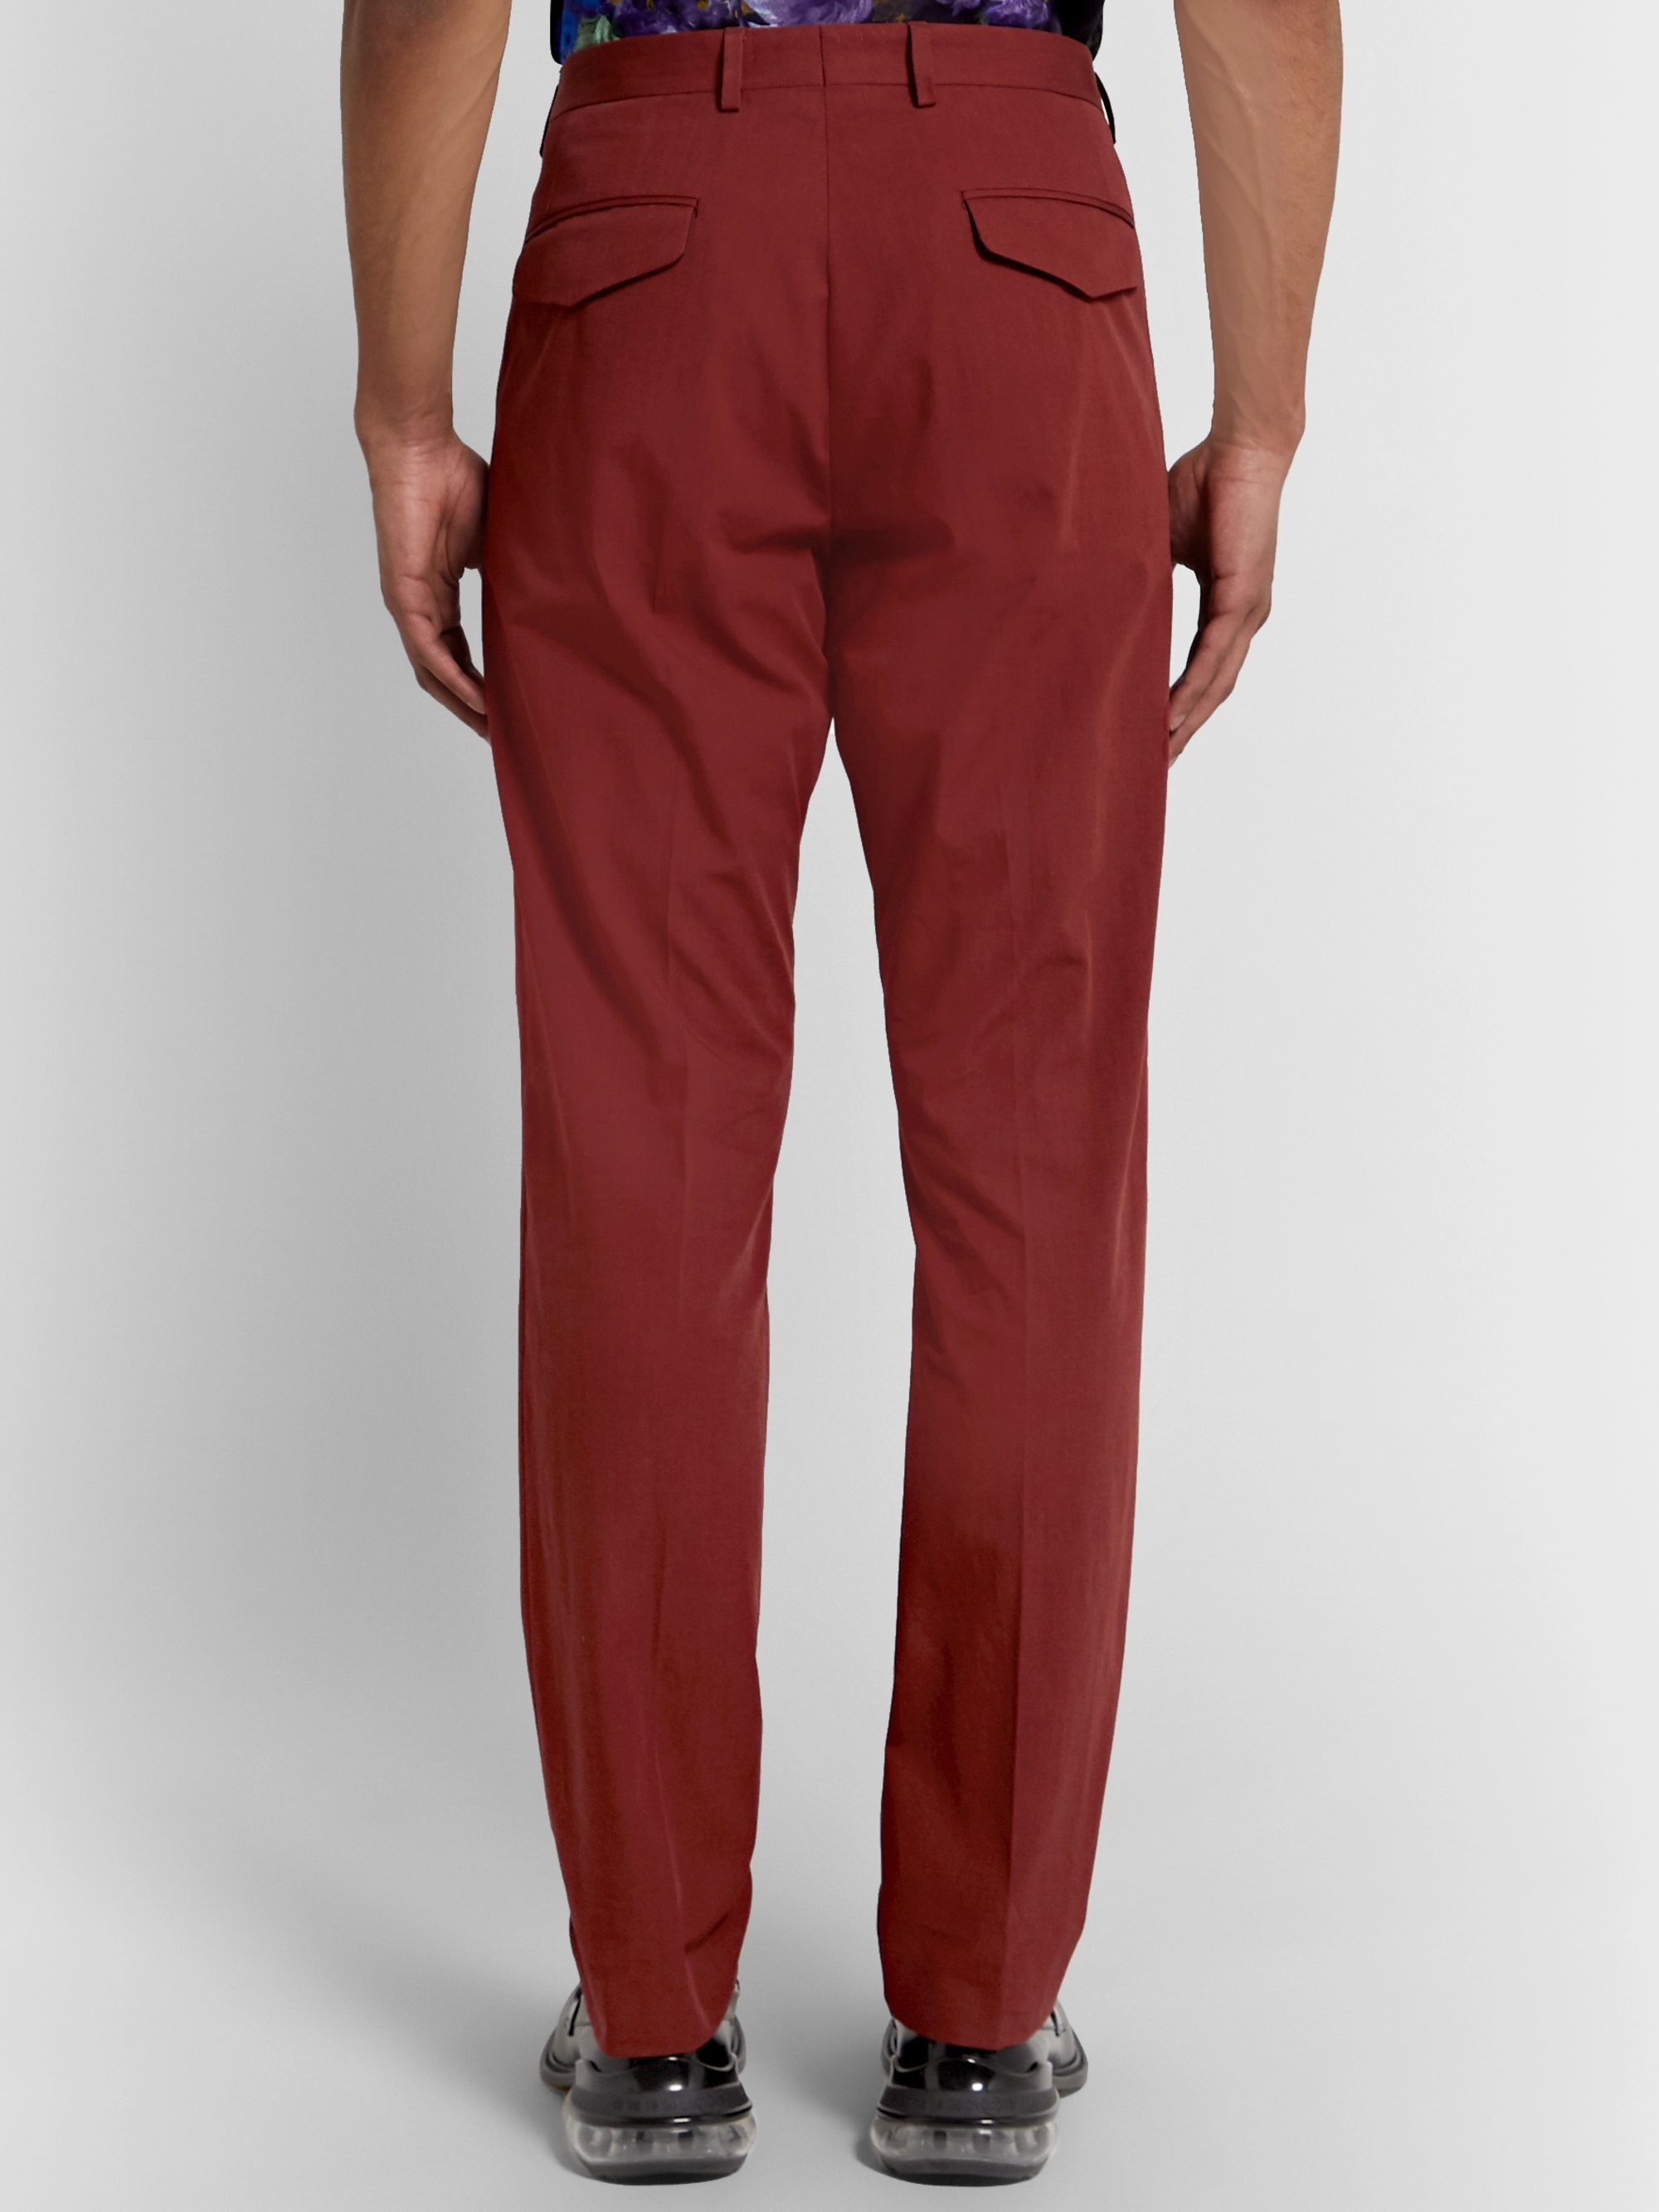 Dries Van Noten Brick Slim-Fit Pleated Cotton Suit Trousers